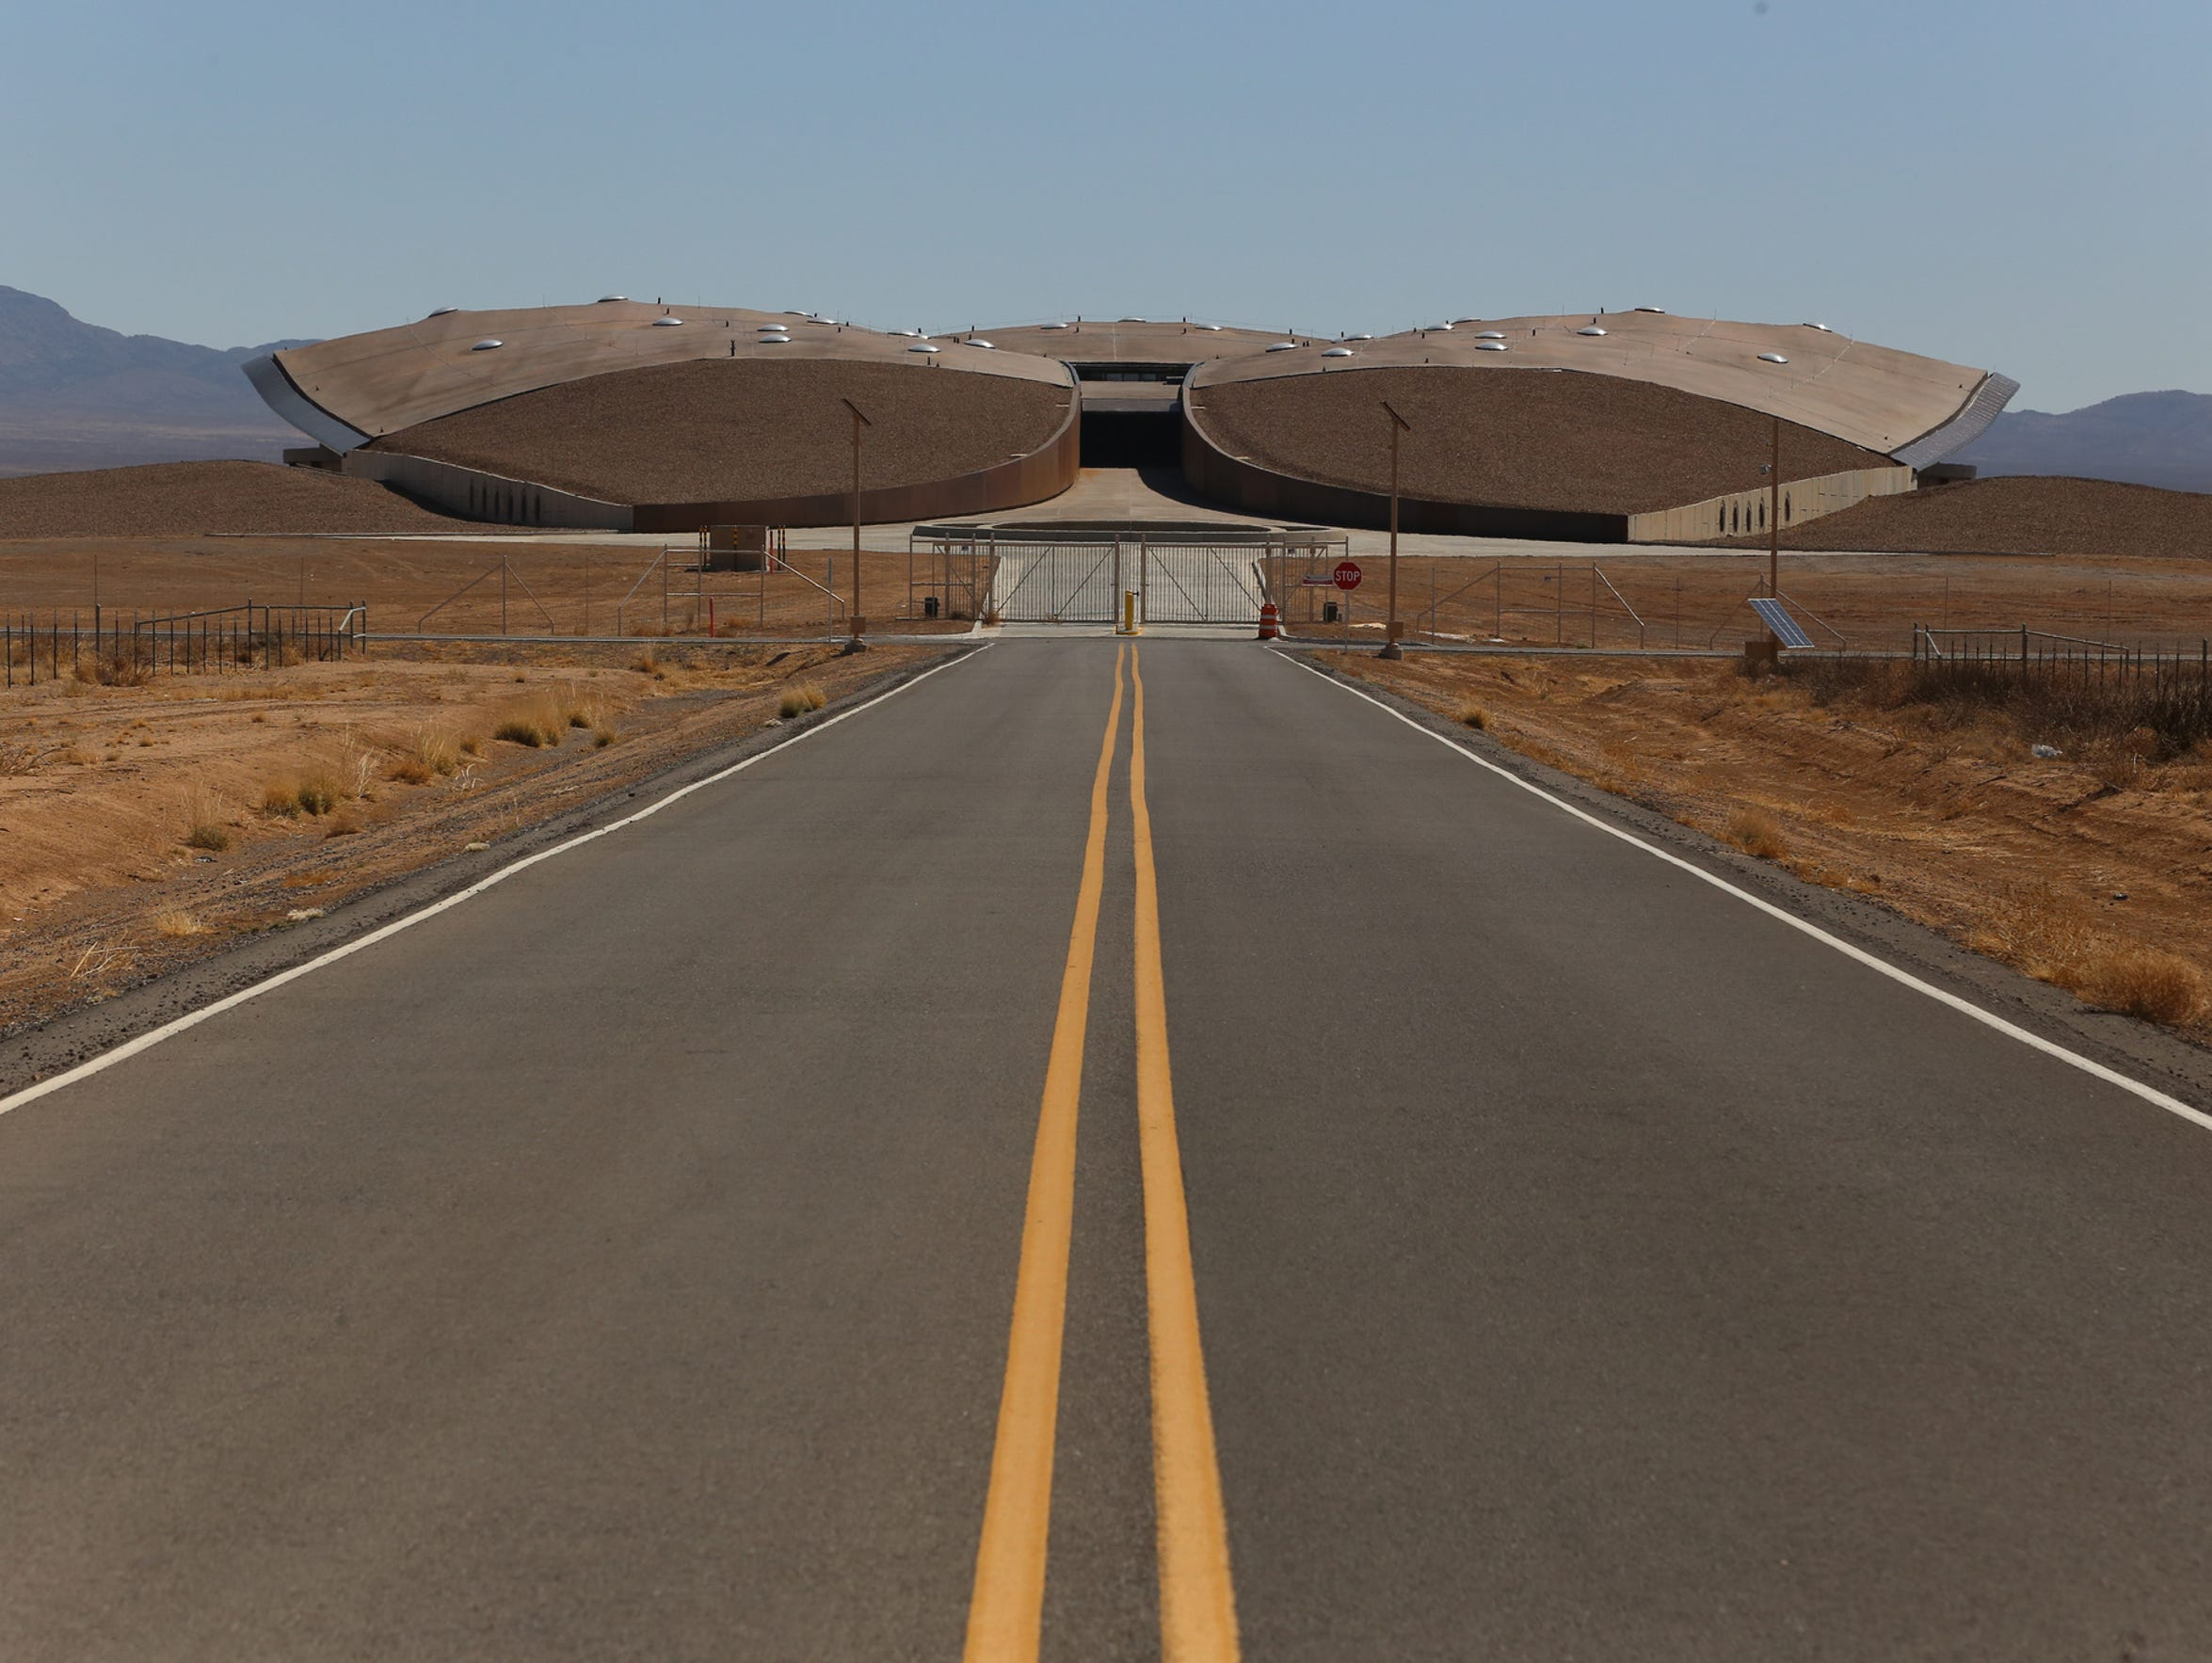 Visitors to Spaceport America on the ground first get